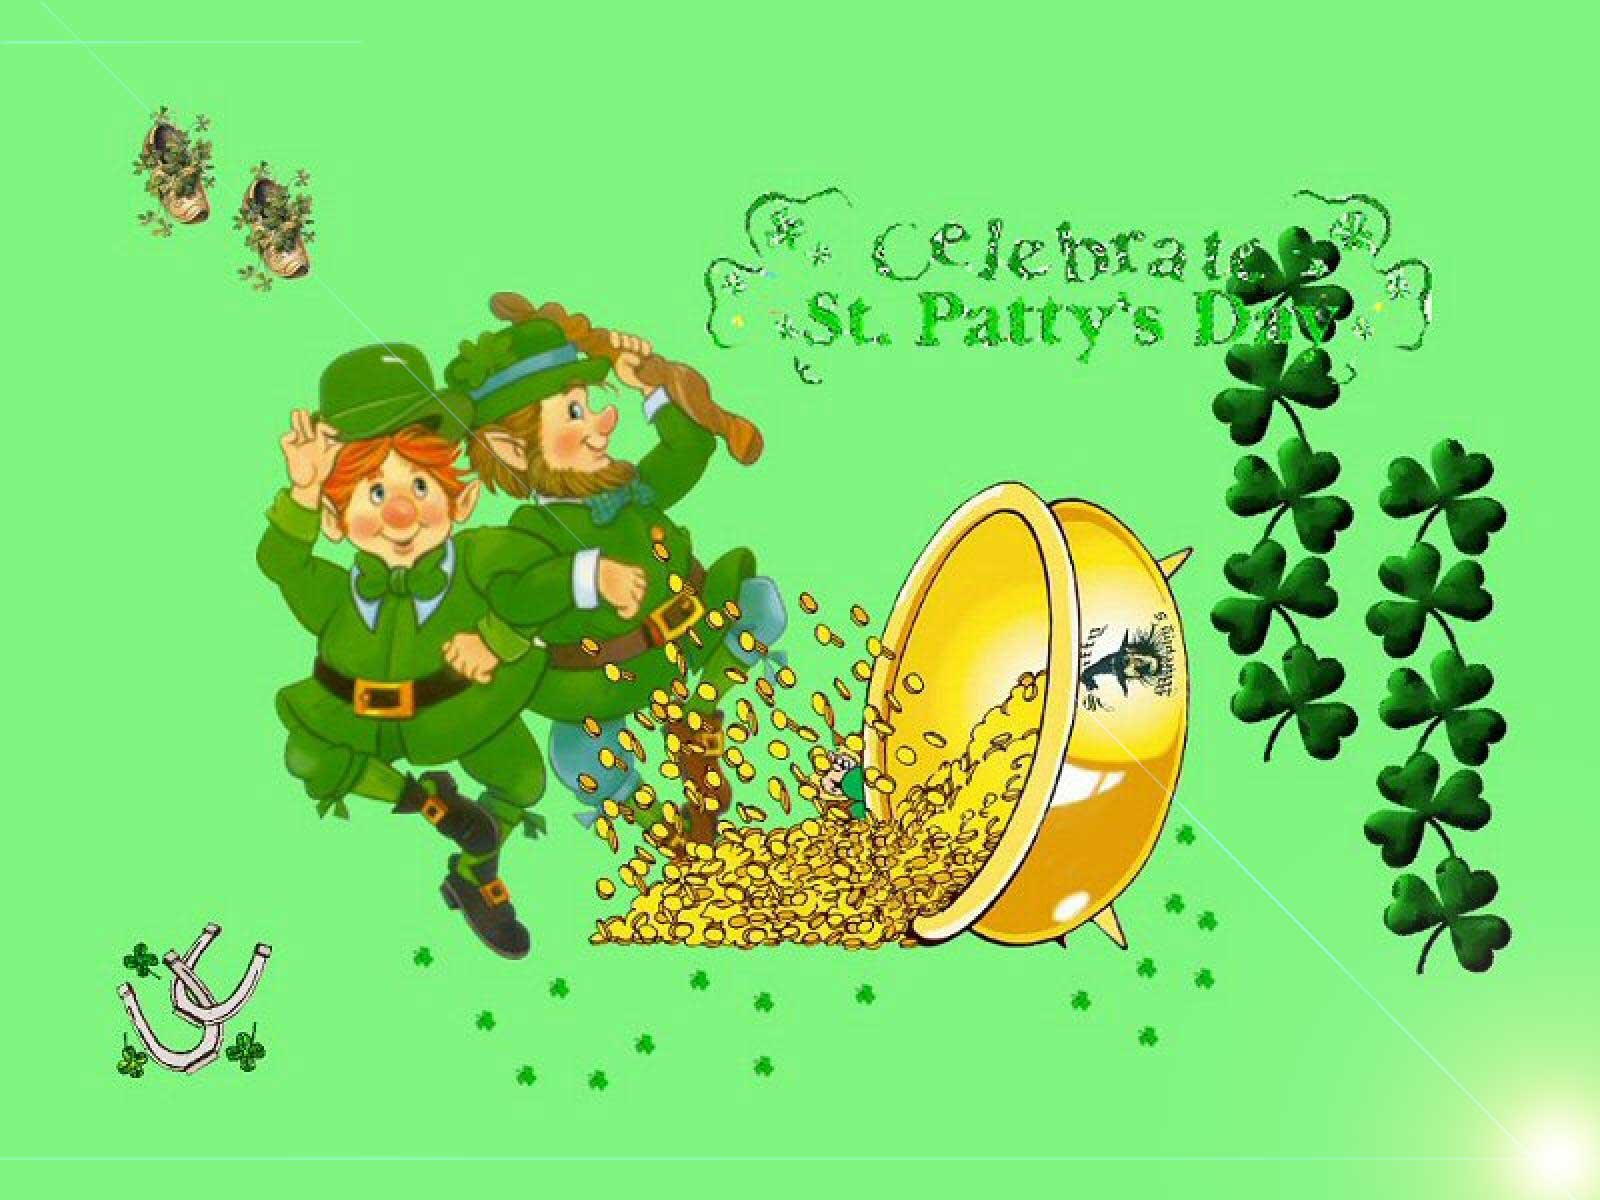 gallery St Patrick's Day Greetings WallPapers | Fun Gallery Images